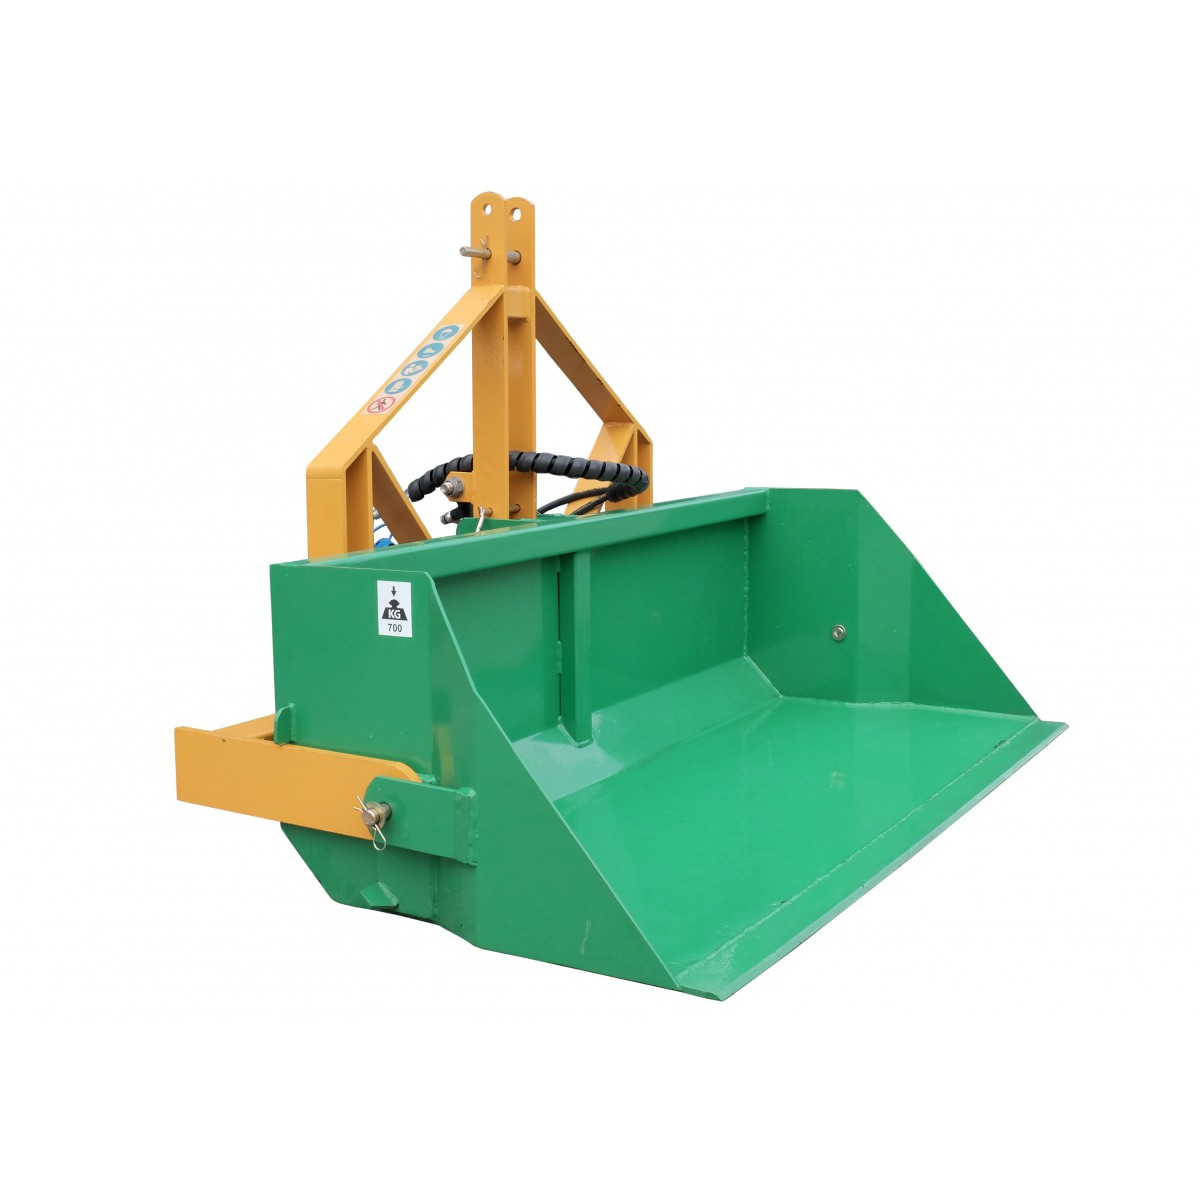 100 cm transport box with a hydraulic tipper, capacity 300 kg